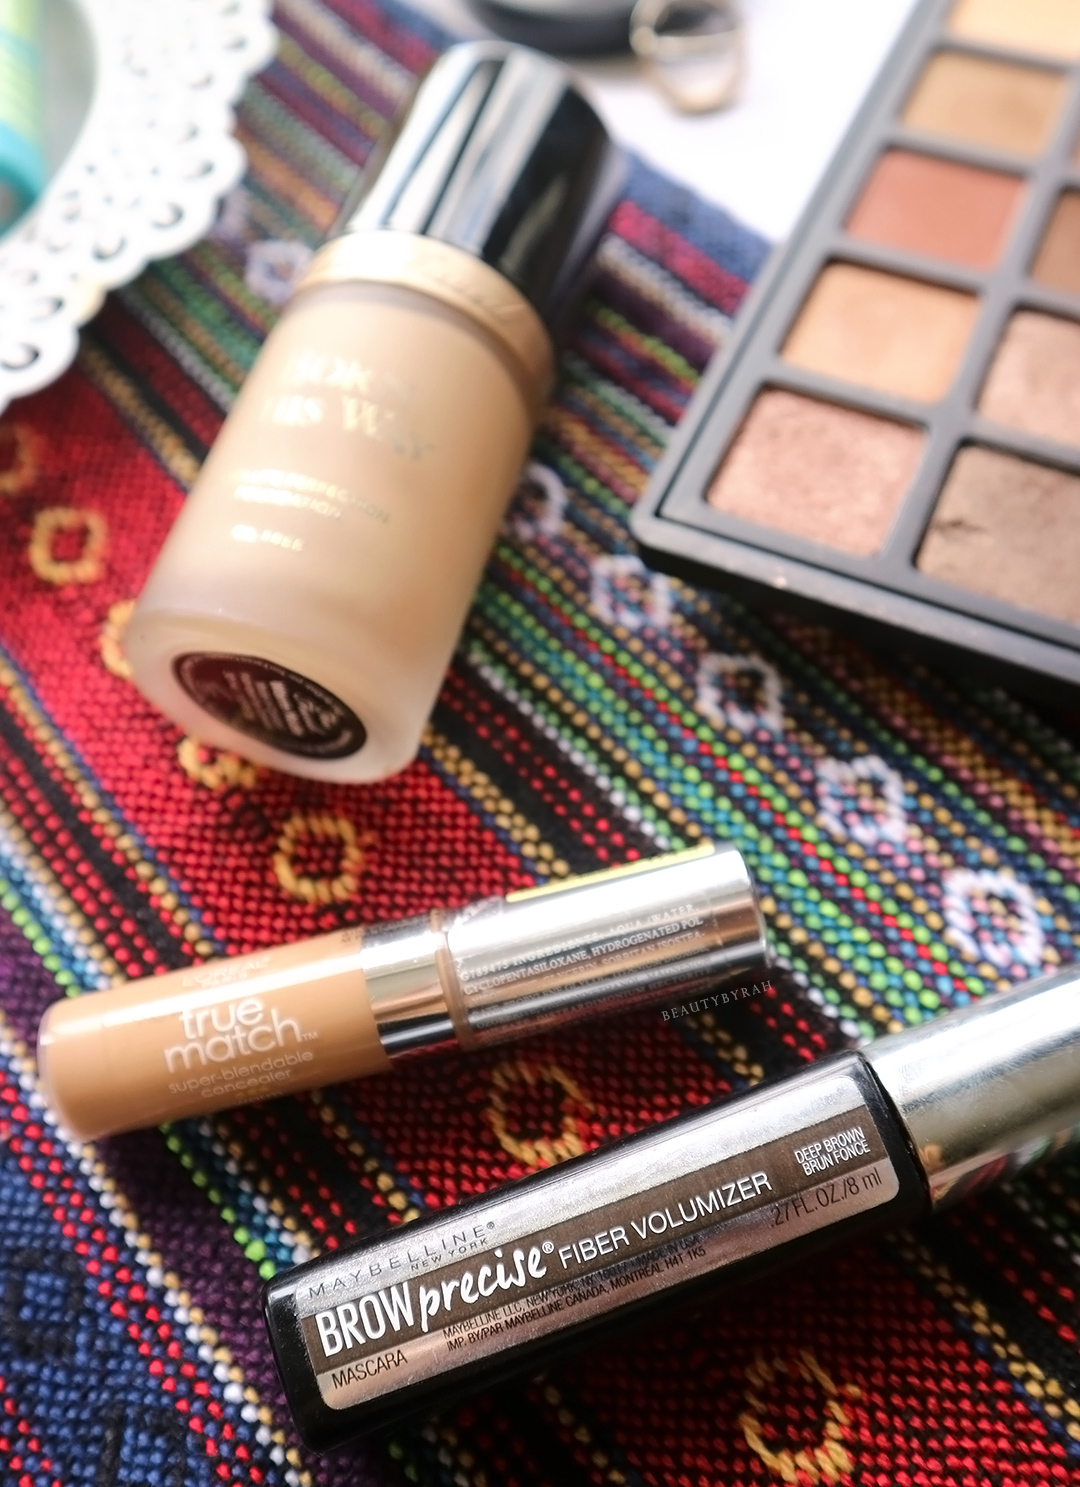 Maybelline Brow Precise Brow Mascara and Loreal True Match concealer review